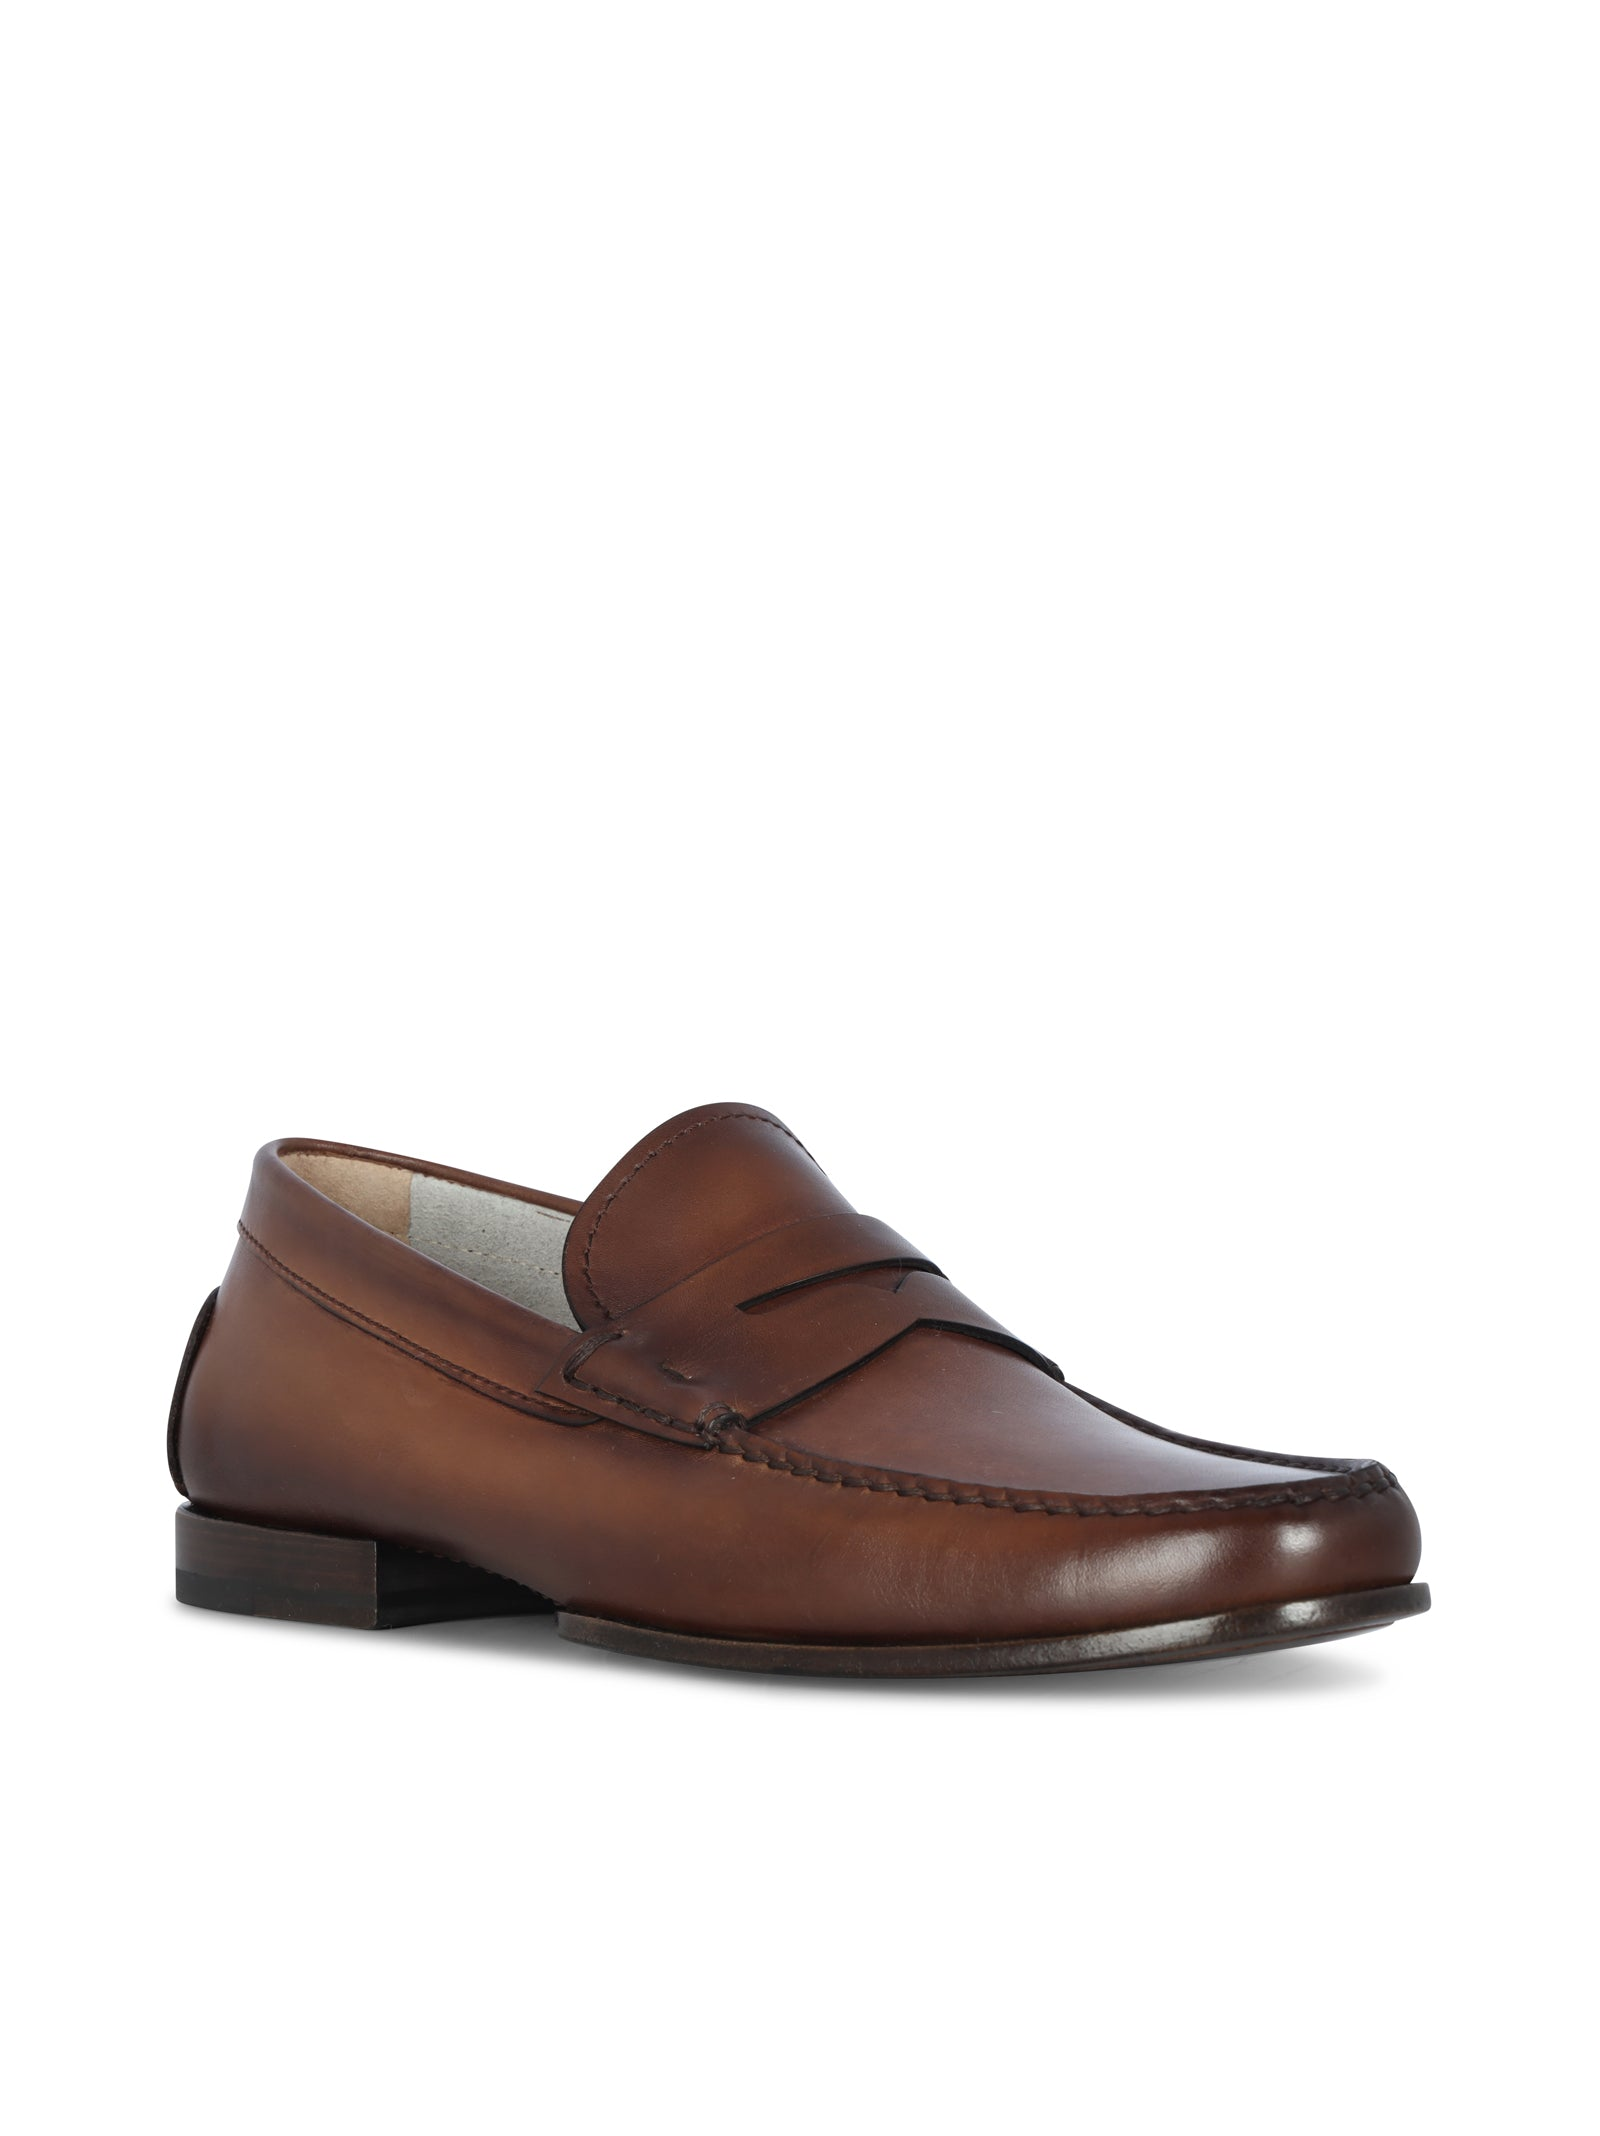 PENNY leather LOAFER